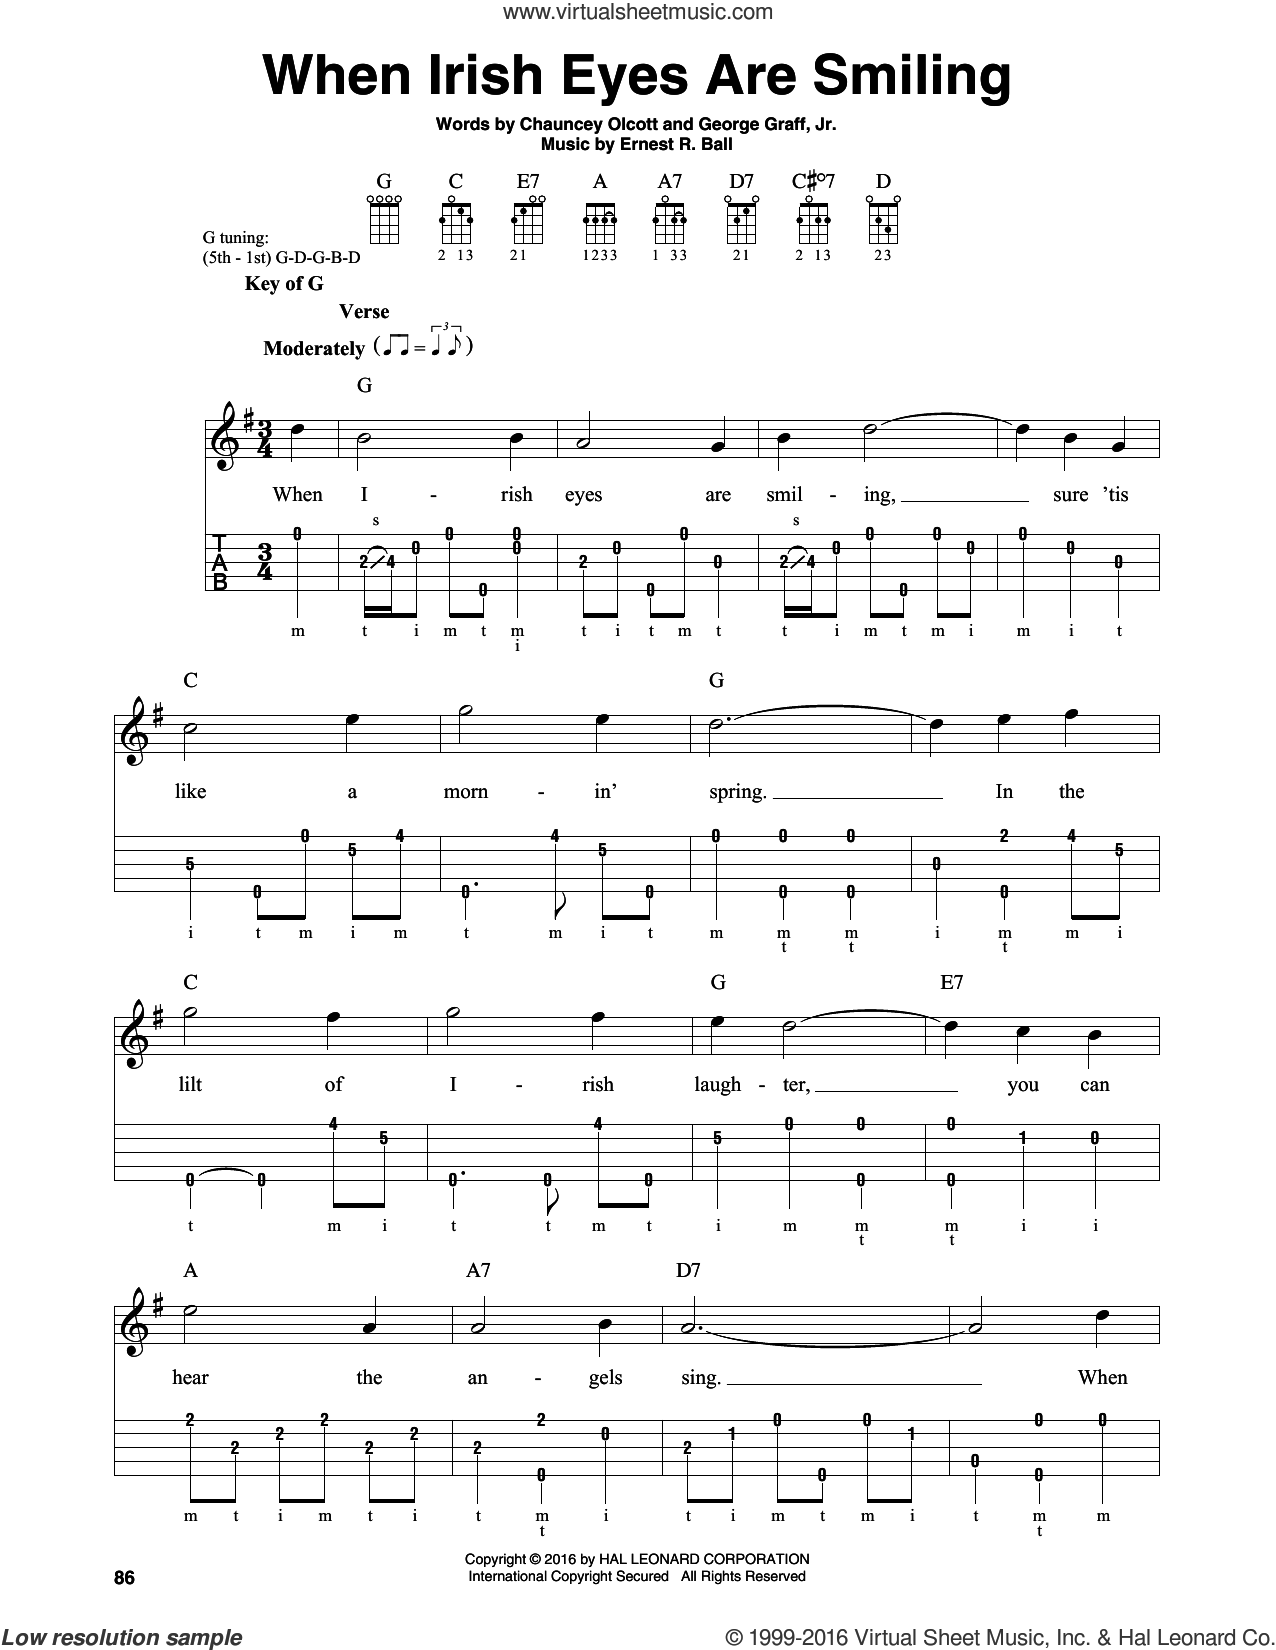 When Irish Eyes Are Smiling sheet music for banjo solo by George Graff Jr.